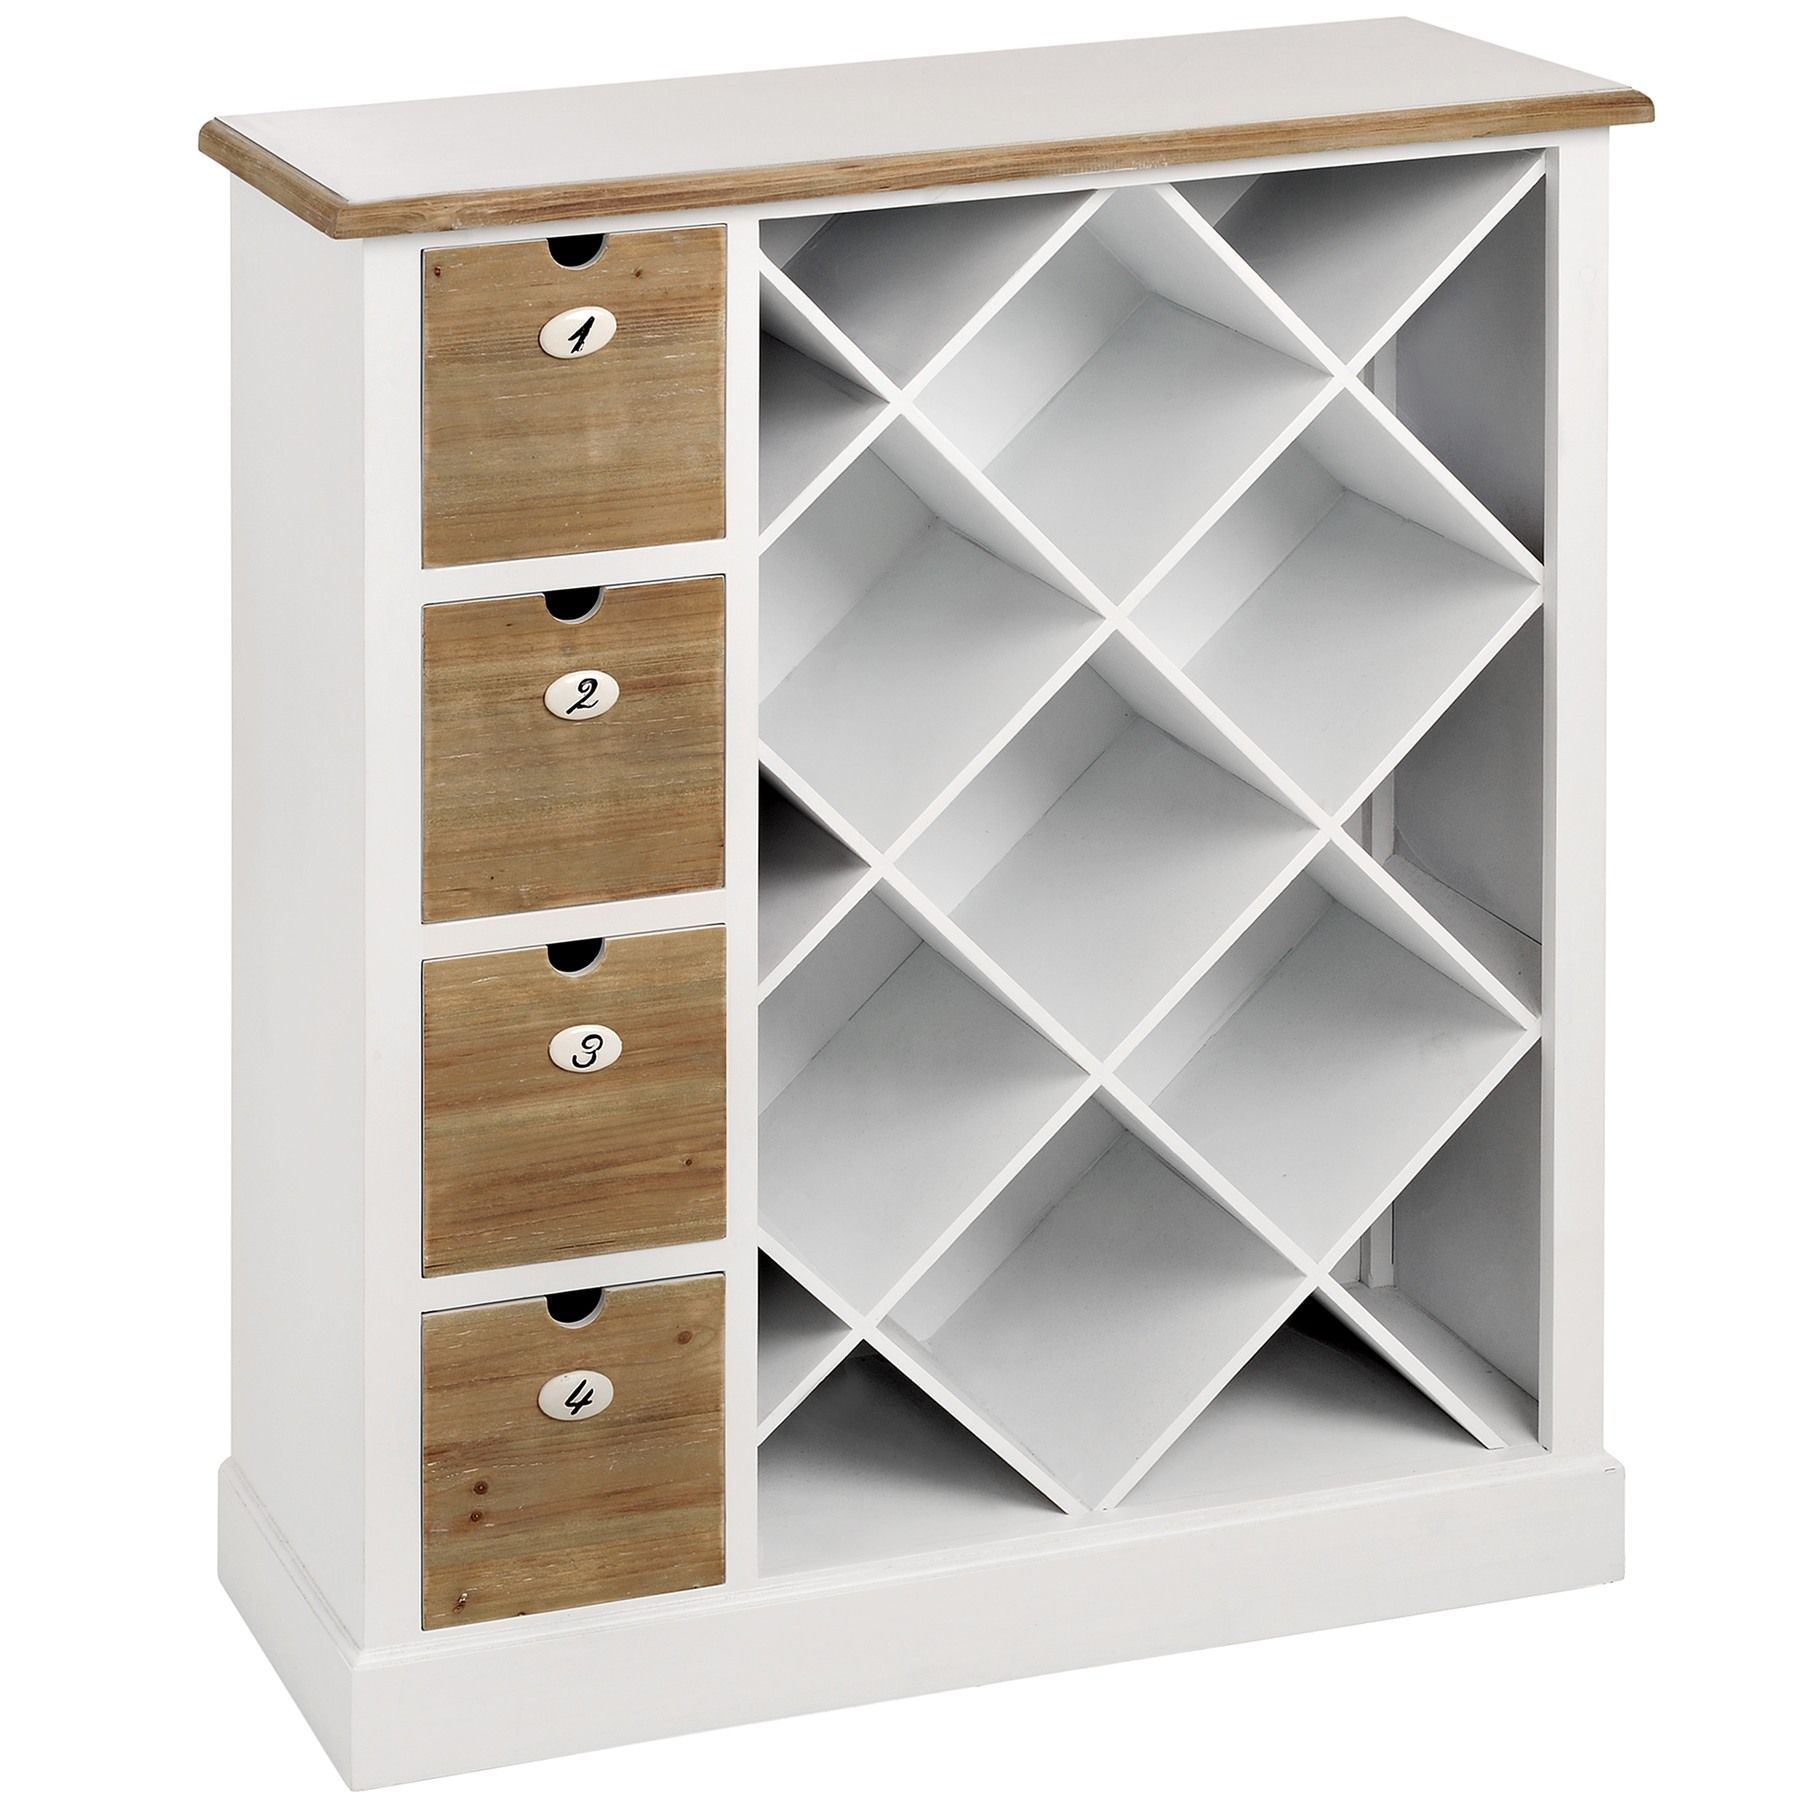 Small Wine Storage Cabinets Shaker White Wooden Wine Storage Cabinet